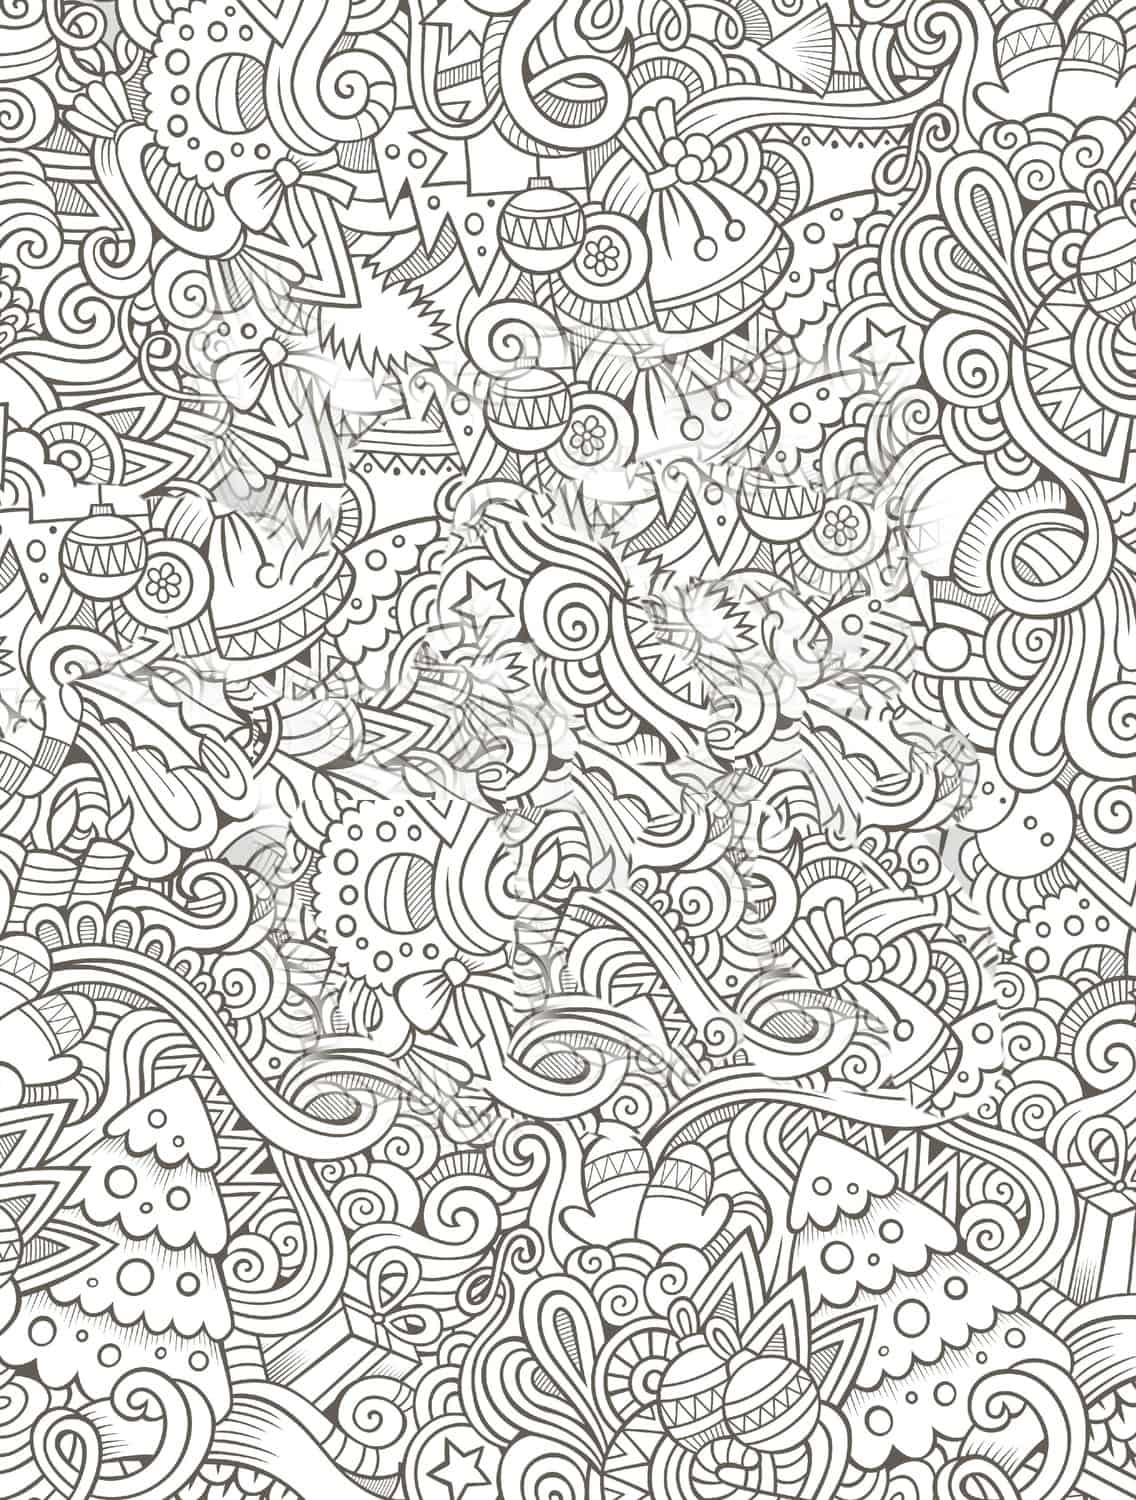 10 free printable holiday adult coloring pages Colouring book for adults online